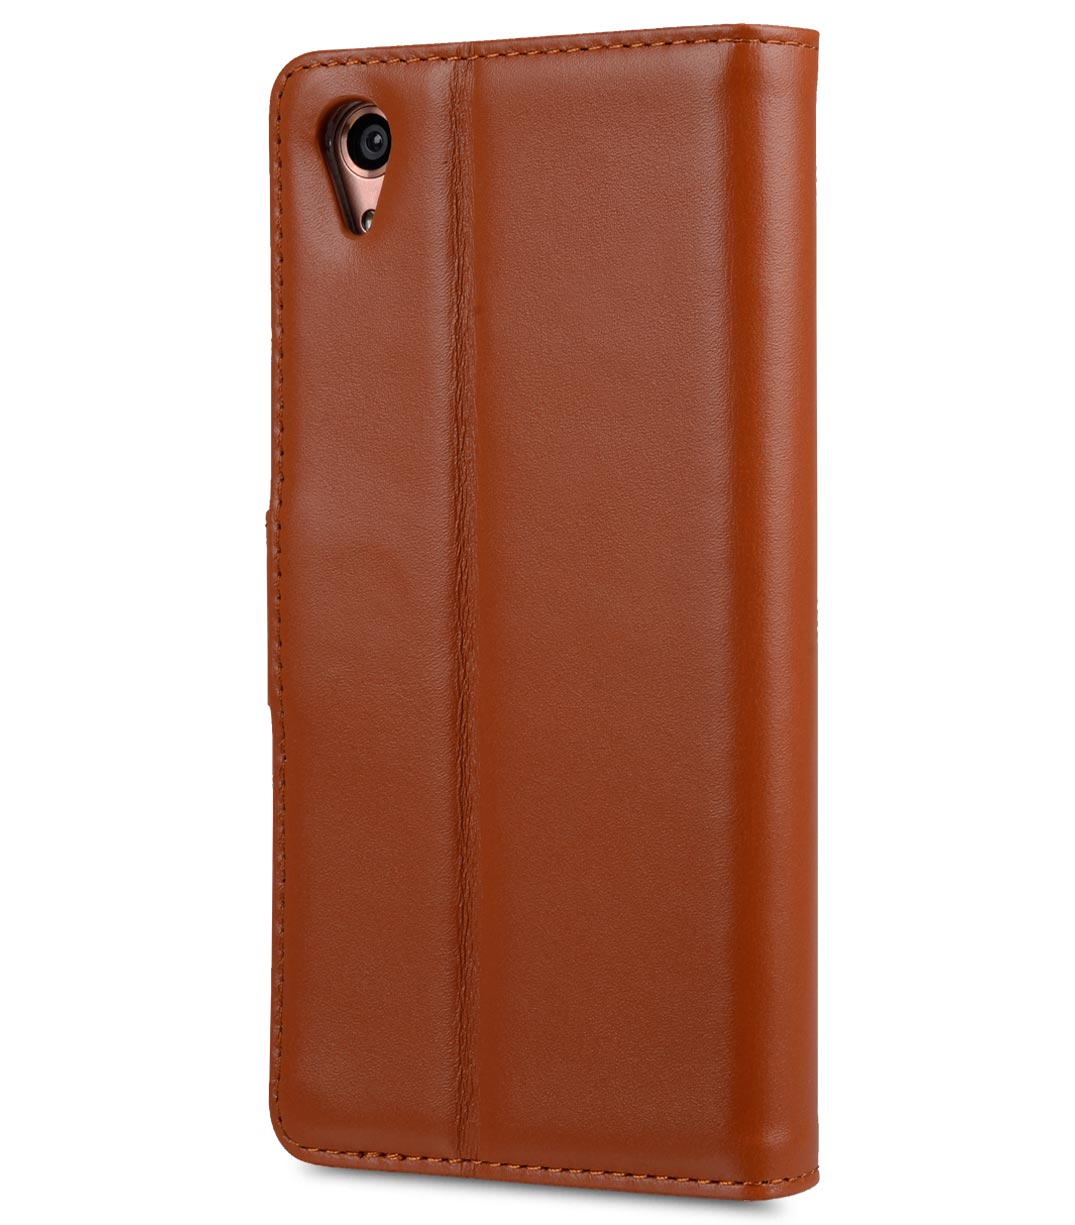 Melkco Premium Genuine Leather Case For Sony Xperia XA - Wallet Book Type With Stand Function (Traditional Vintage Brown)